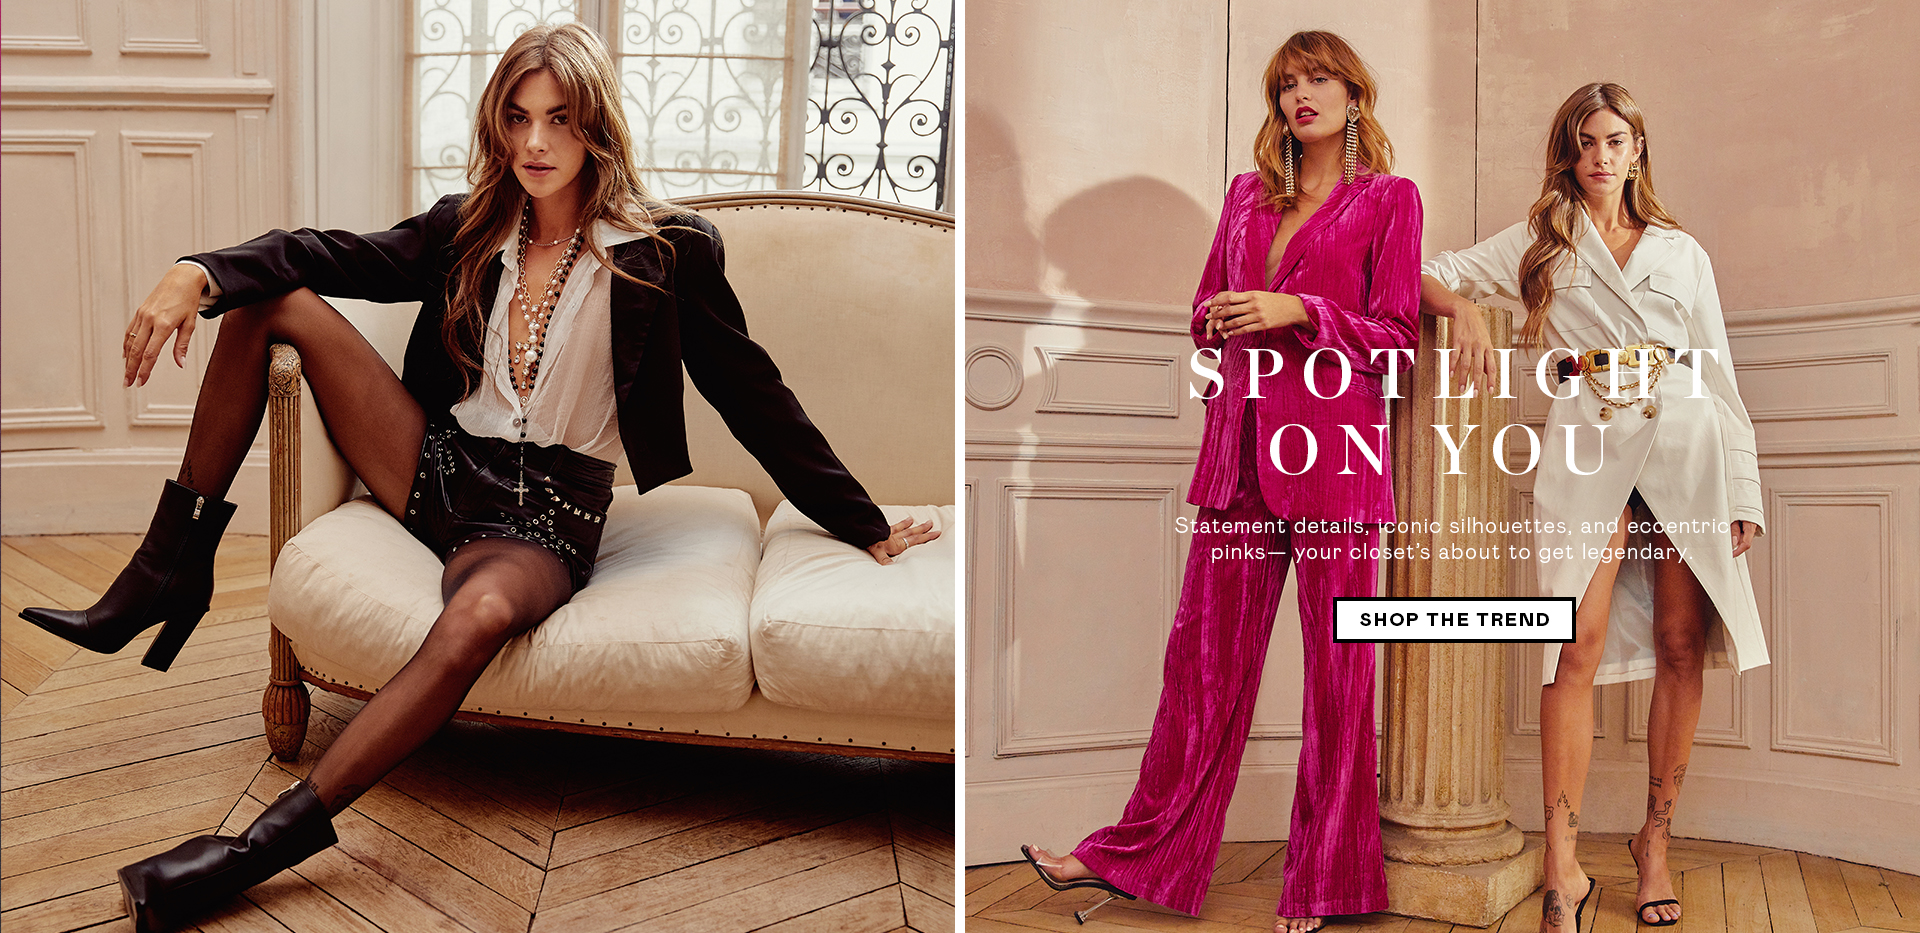 reputable site d1d4e 23393 Women's Online Clothes & Fashion Shopping | Nasty Gal